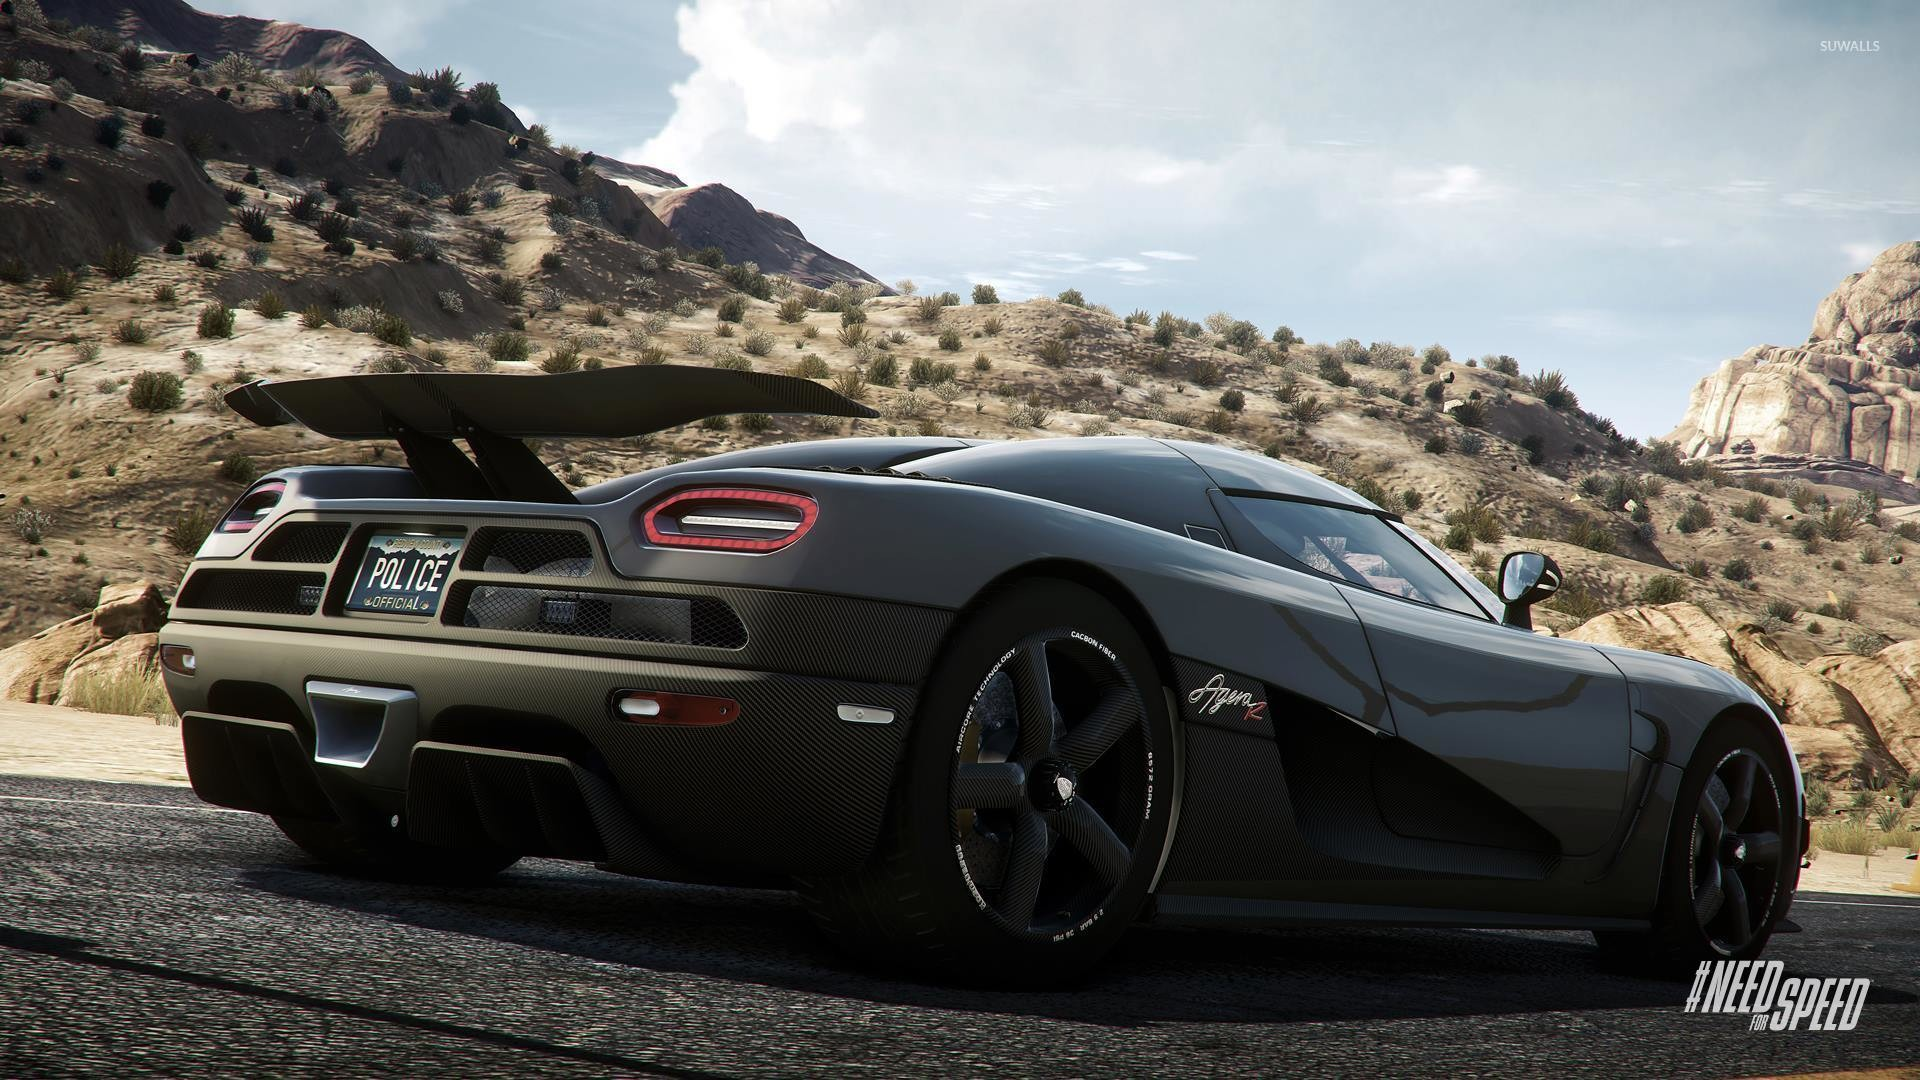 1920x1080 Koenigsegg Agera R - Need for Speed: Rivals wallpaper